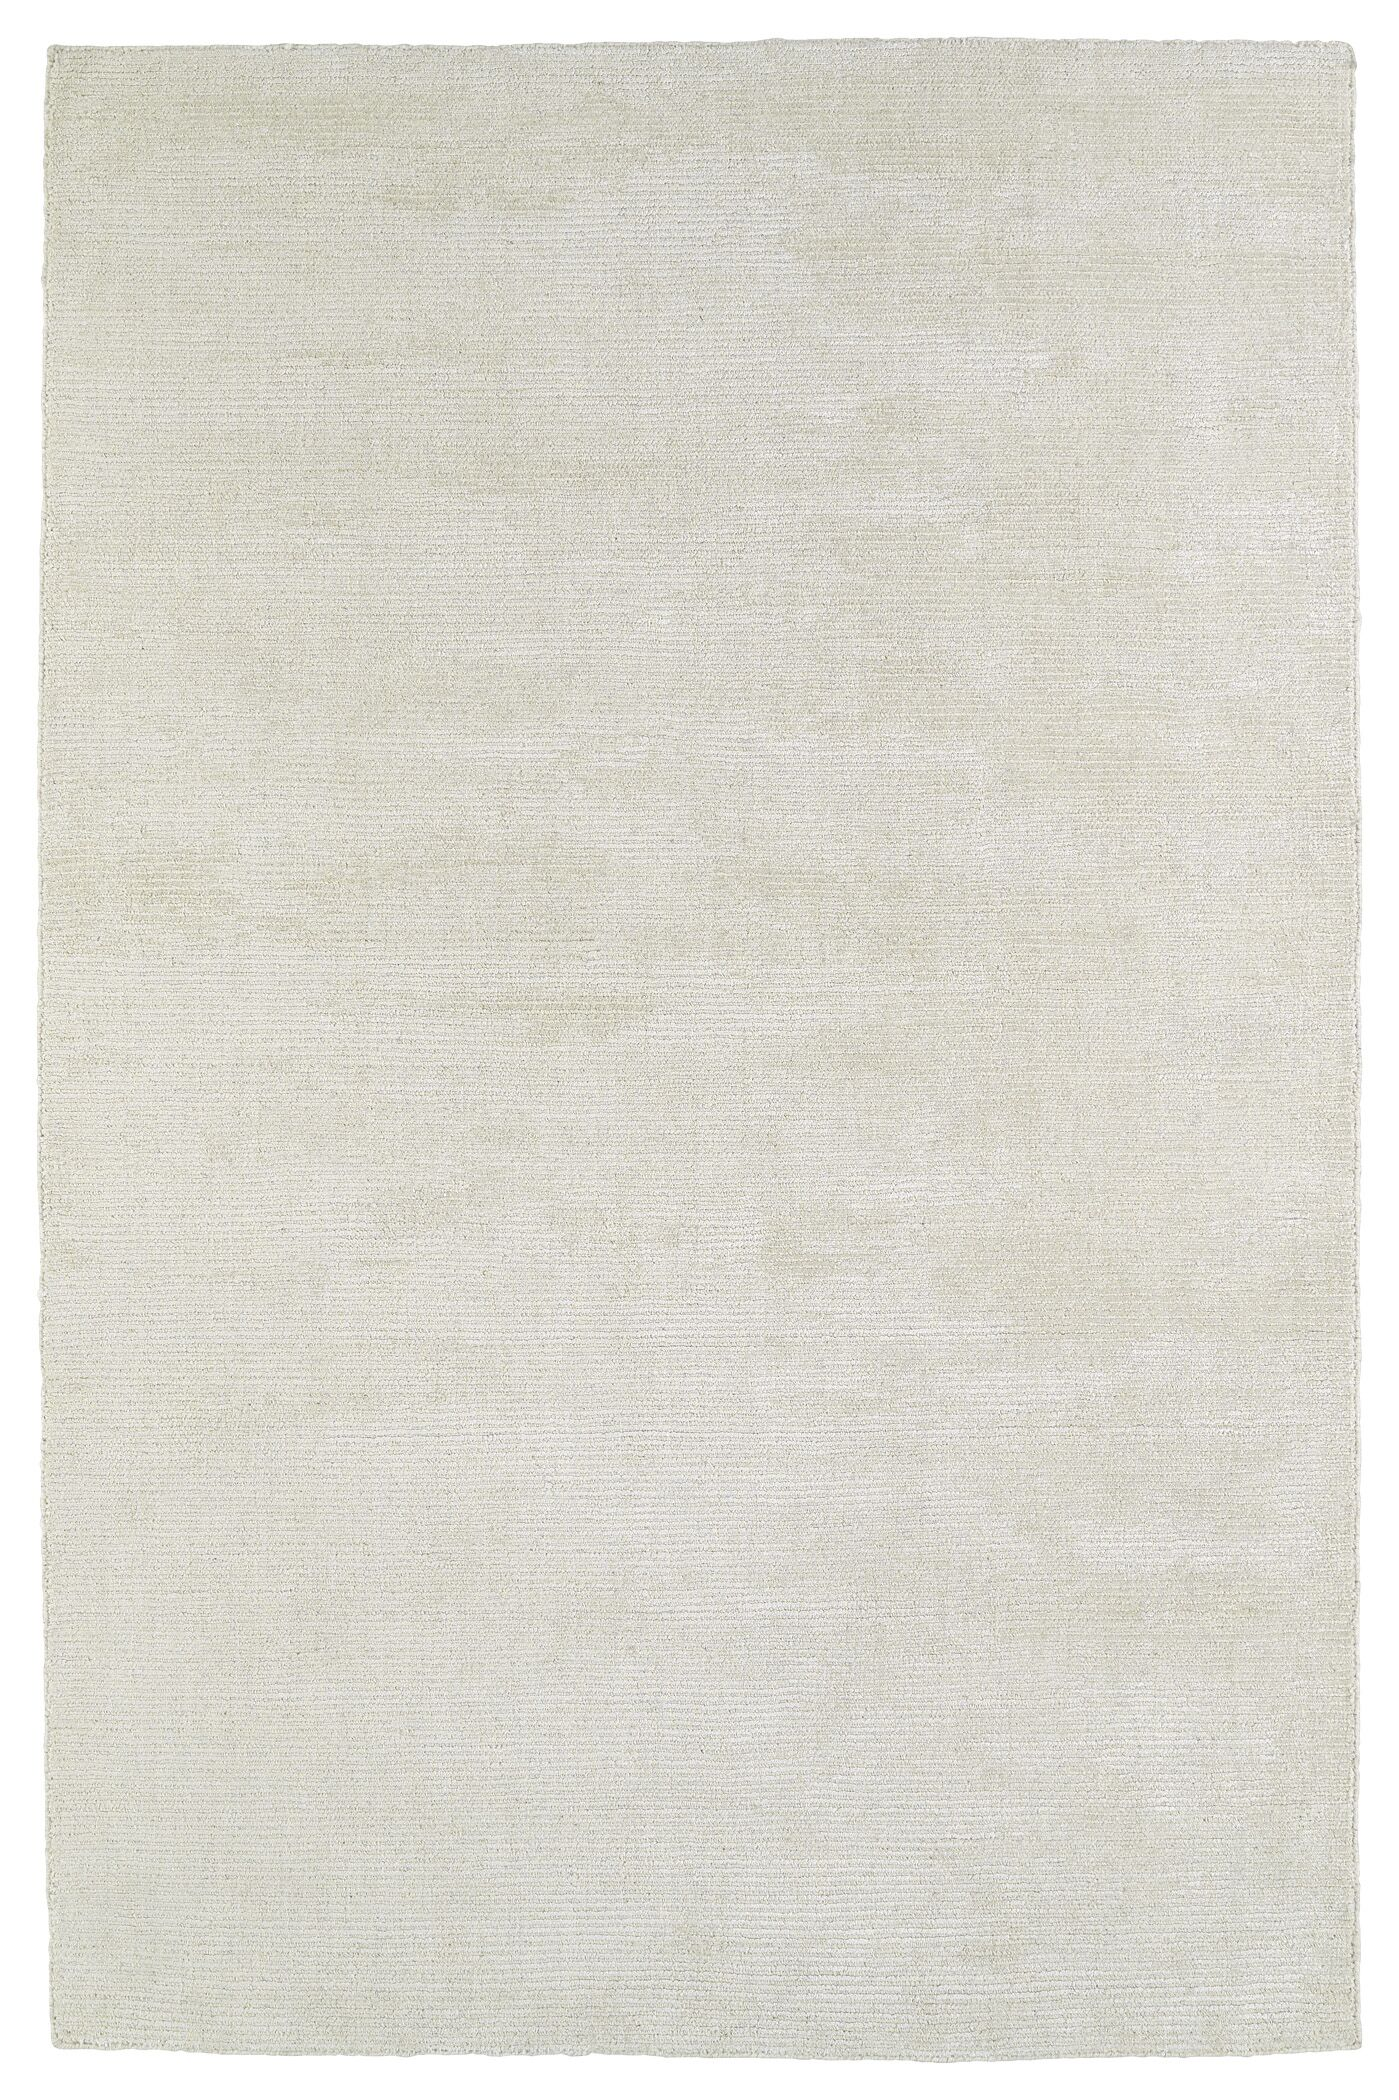 Claverham Hand Woven Wool Cream Area Rug Rug Size: Rectangle 9' x 12'